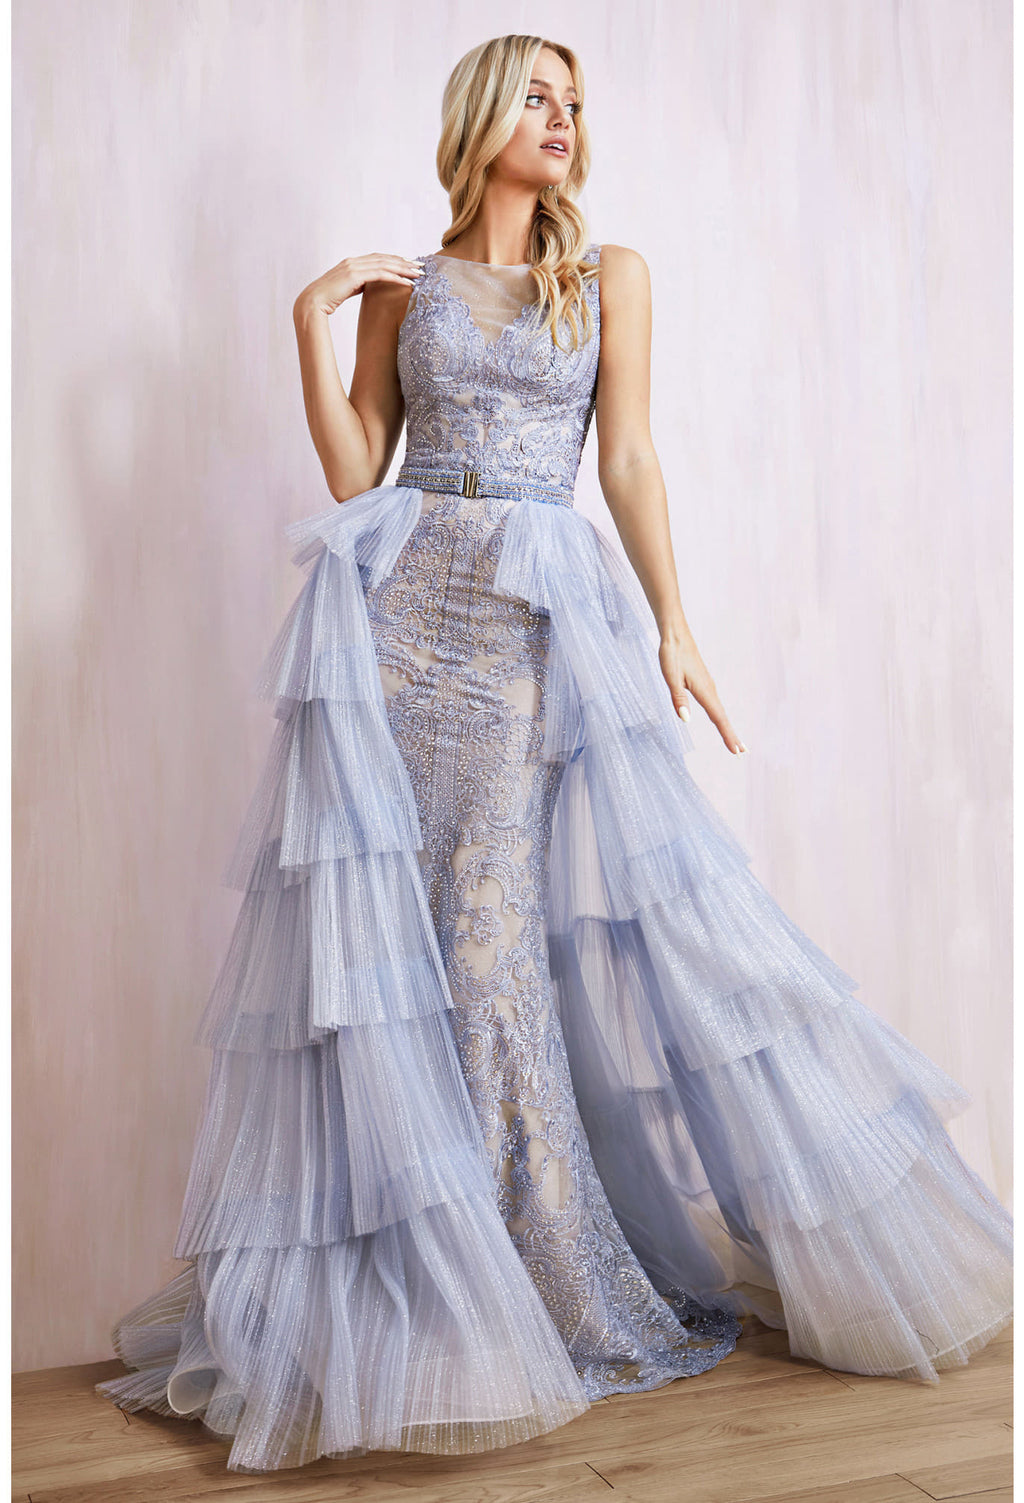 ARIA GOWN ELEGANT LACE SHEATH GOWN WITH A DETACHABLE TIERED GLITTER TULLE SKIRT